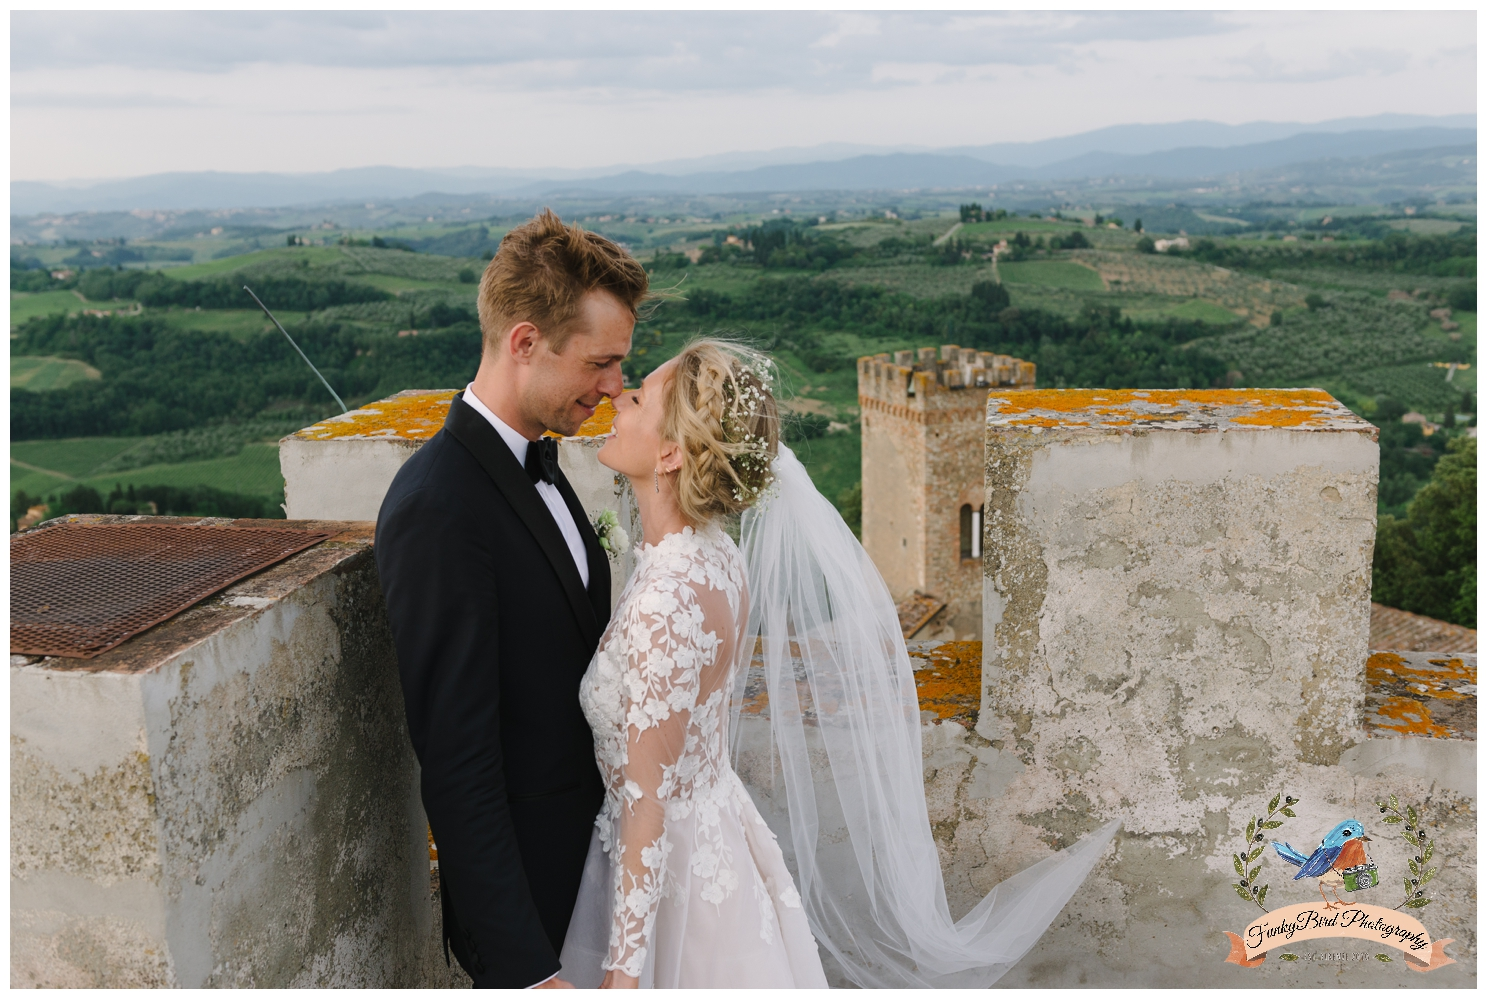 Wedding_Photographer_Tuscany_Bryllupsfotograf_0085.jpg